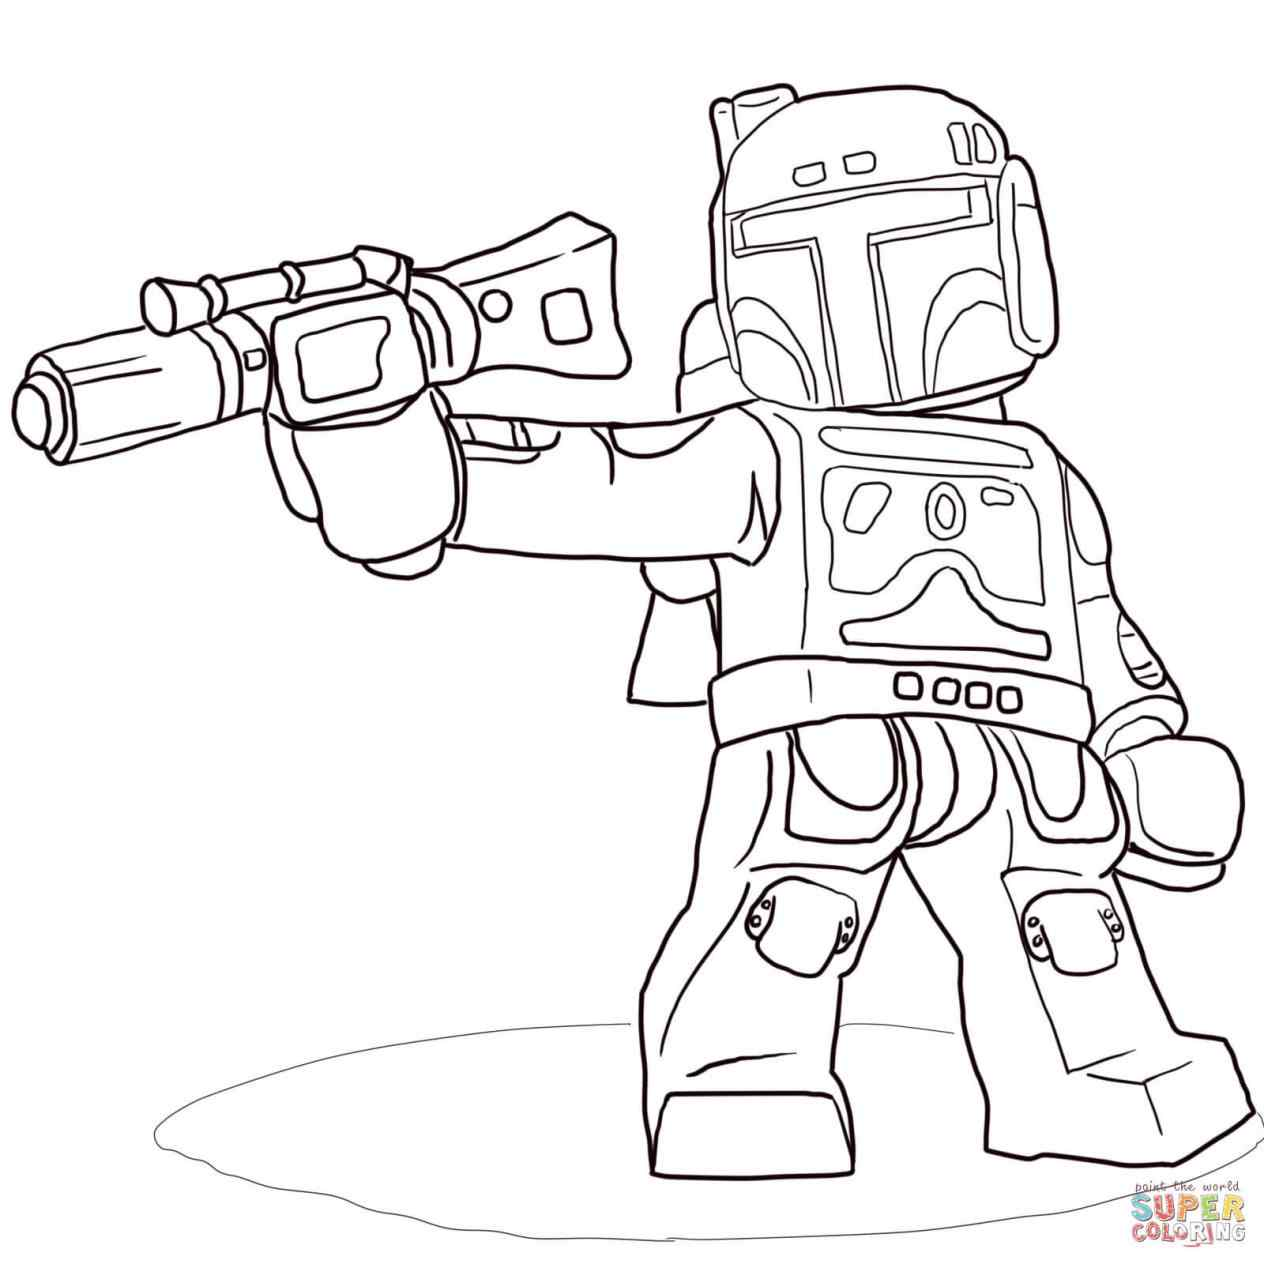 1264x1264 Lego Ninjago Rebooted Coloring Pages Online Coloring Printable